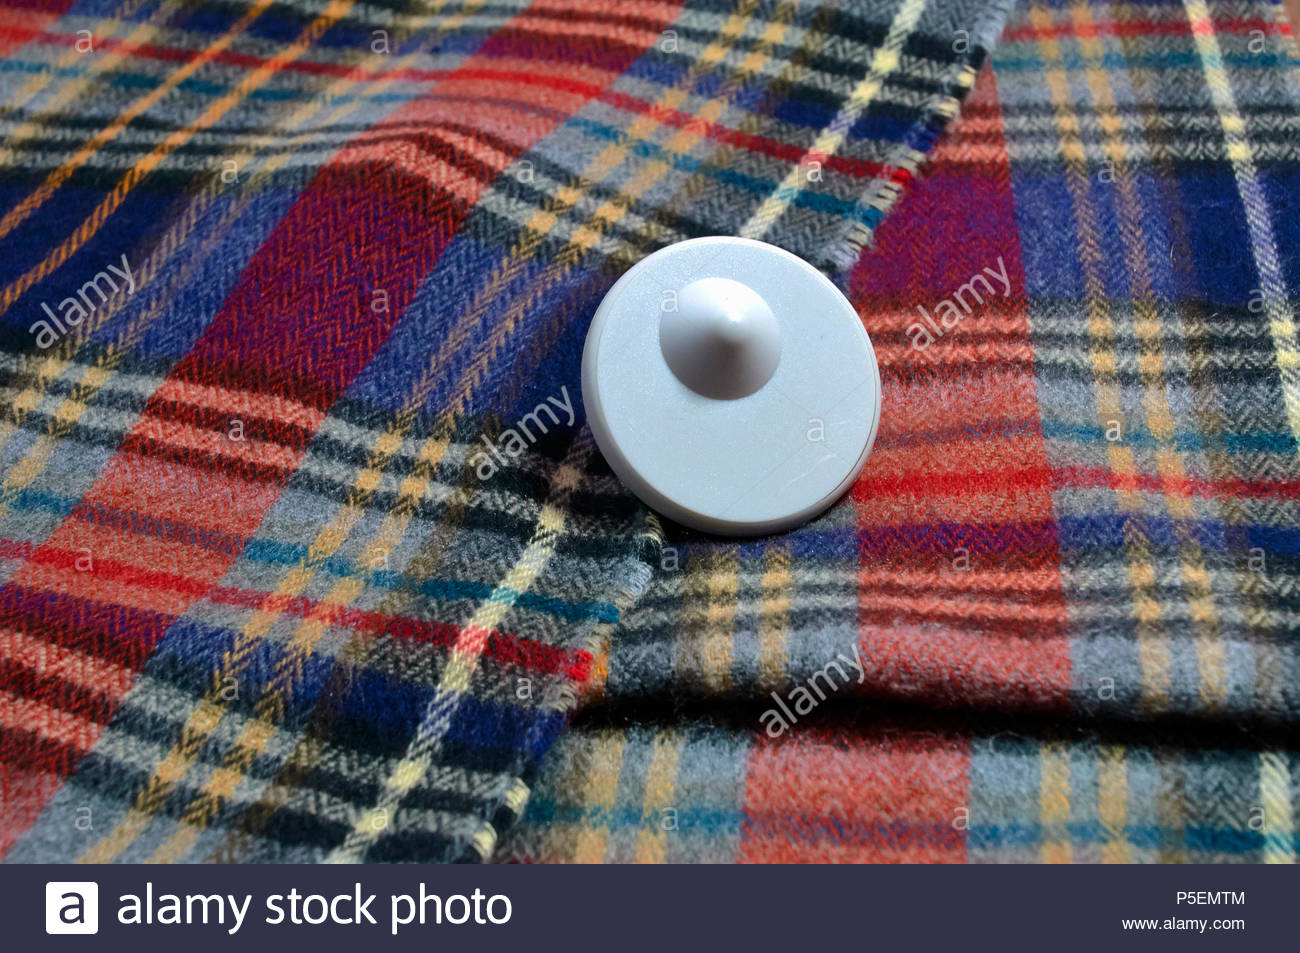 A plastic anti theft security tag on a tartan scarf to stop shoplifting from retail shops - Stock Image